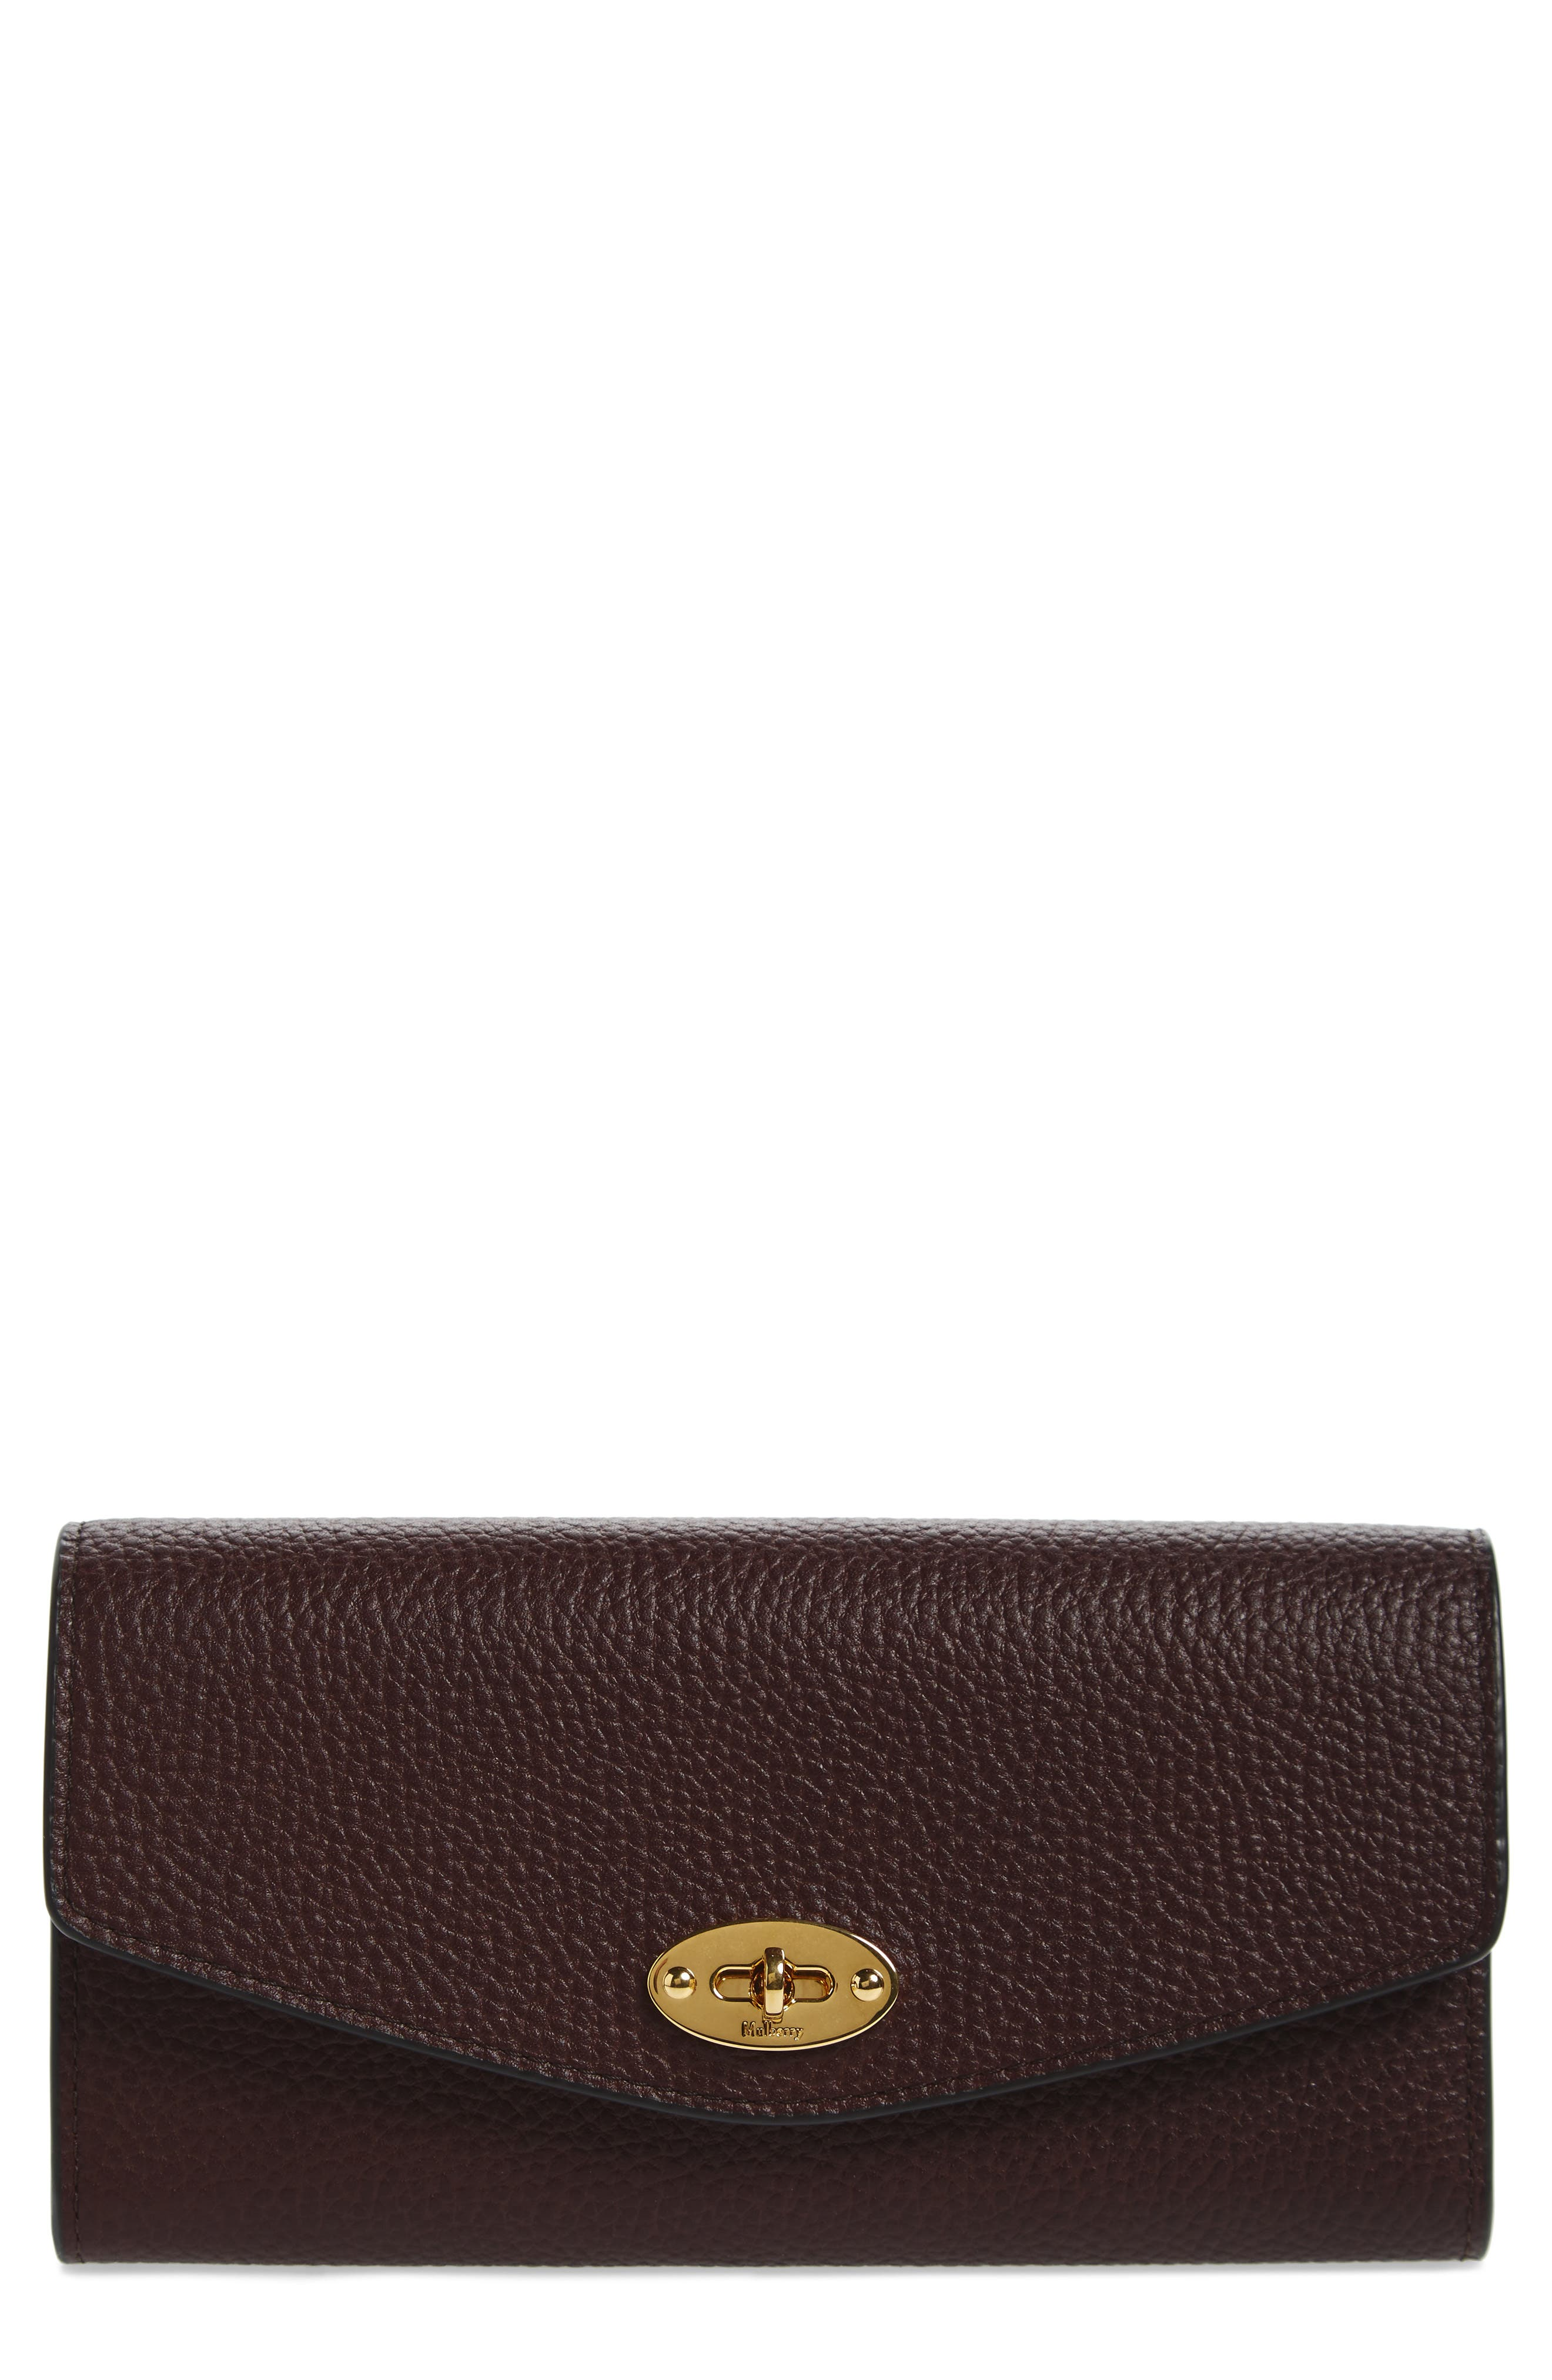 Main Image - Mulberry Darley Continental Calfskin Leather Wallet